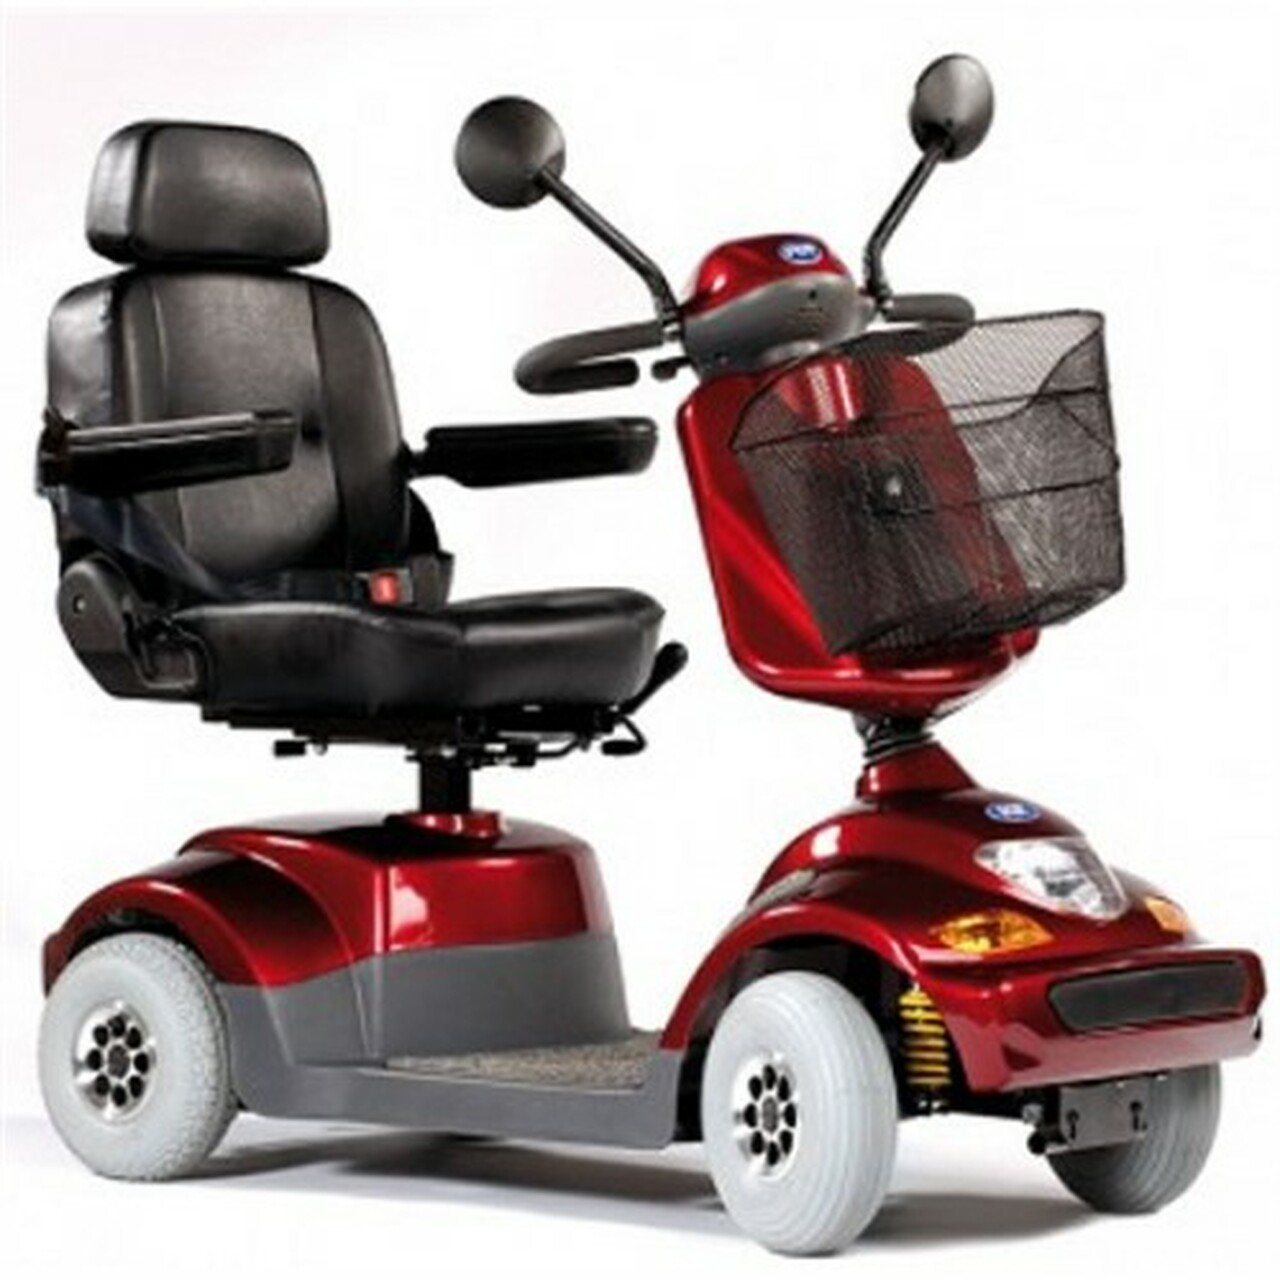 Typical medium mobility scooter